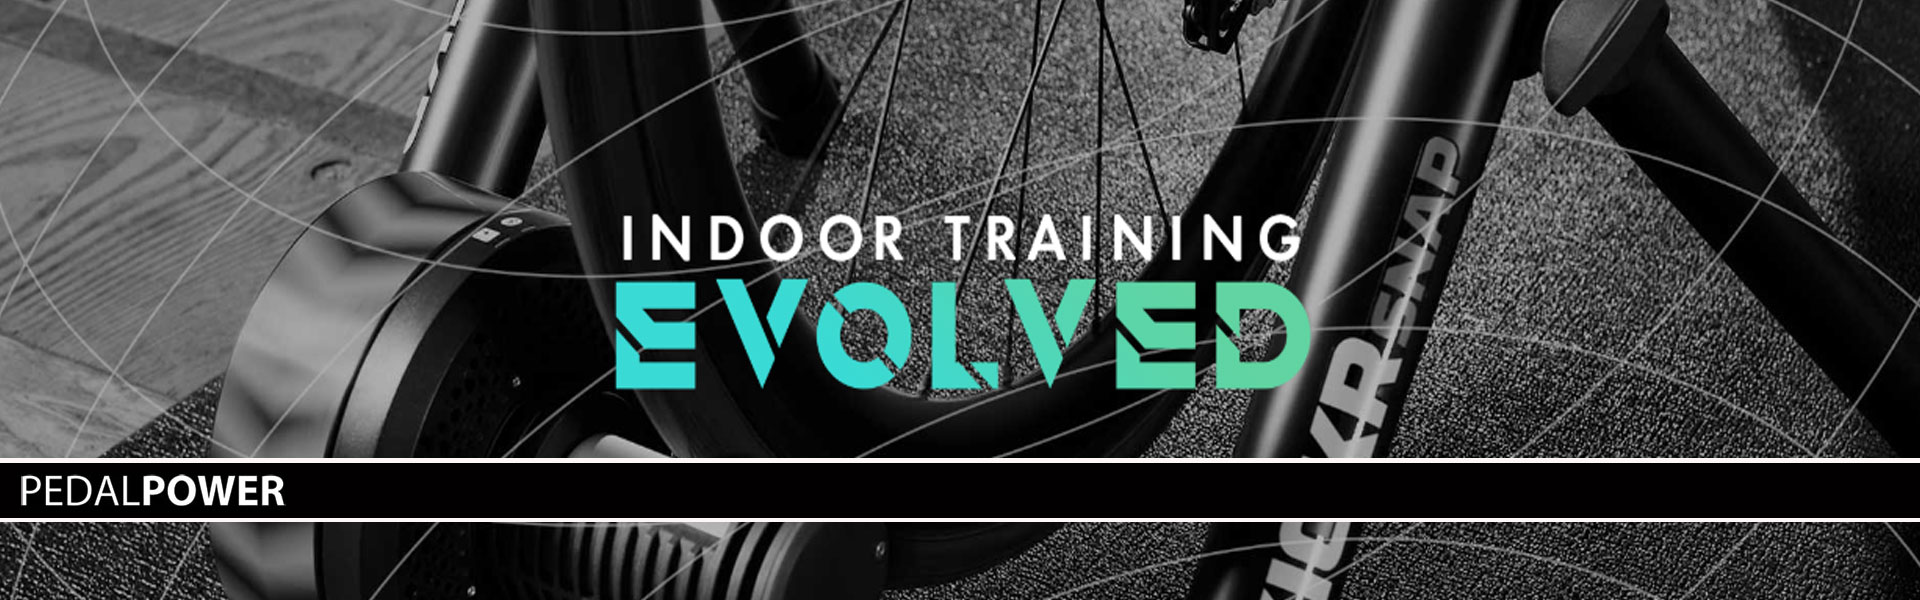 PedalPower Trainers Wahoo Fitness